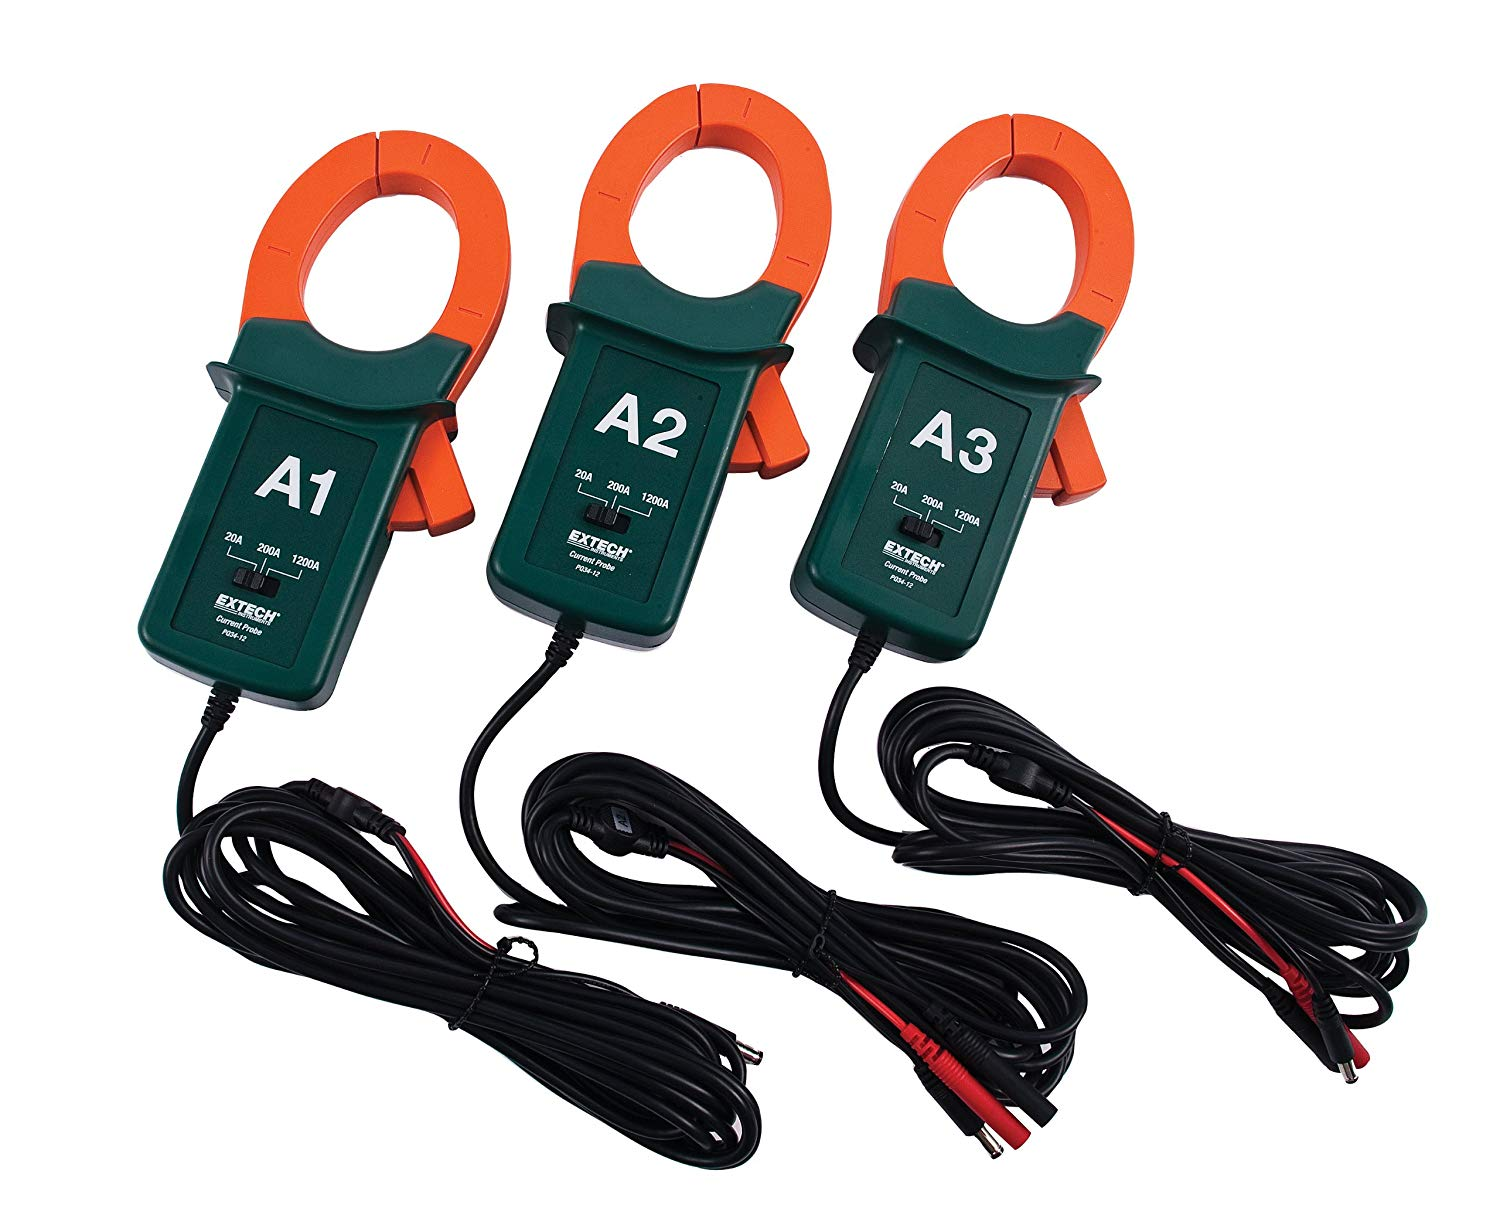 EXTECH PQ34-12 - 1200A Current Clamp Probes